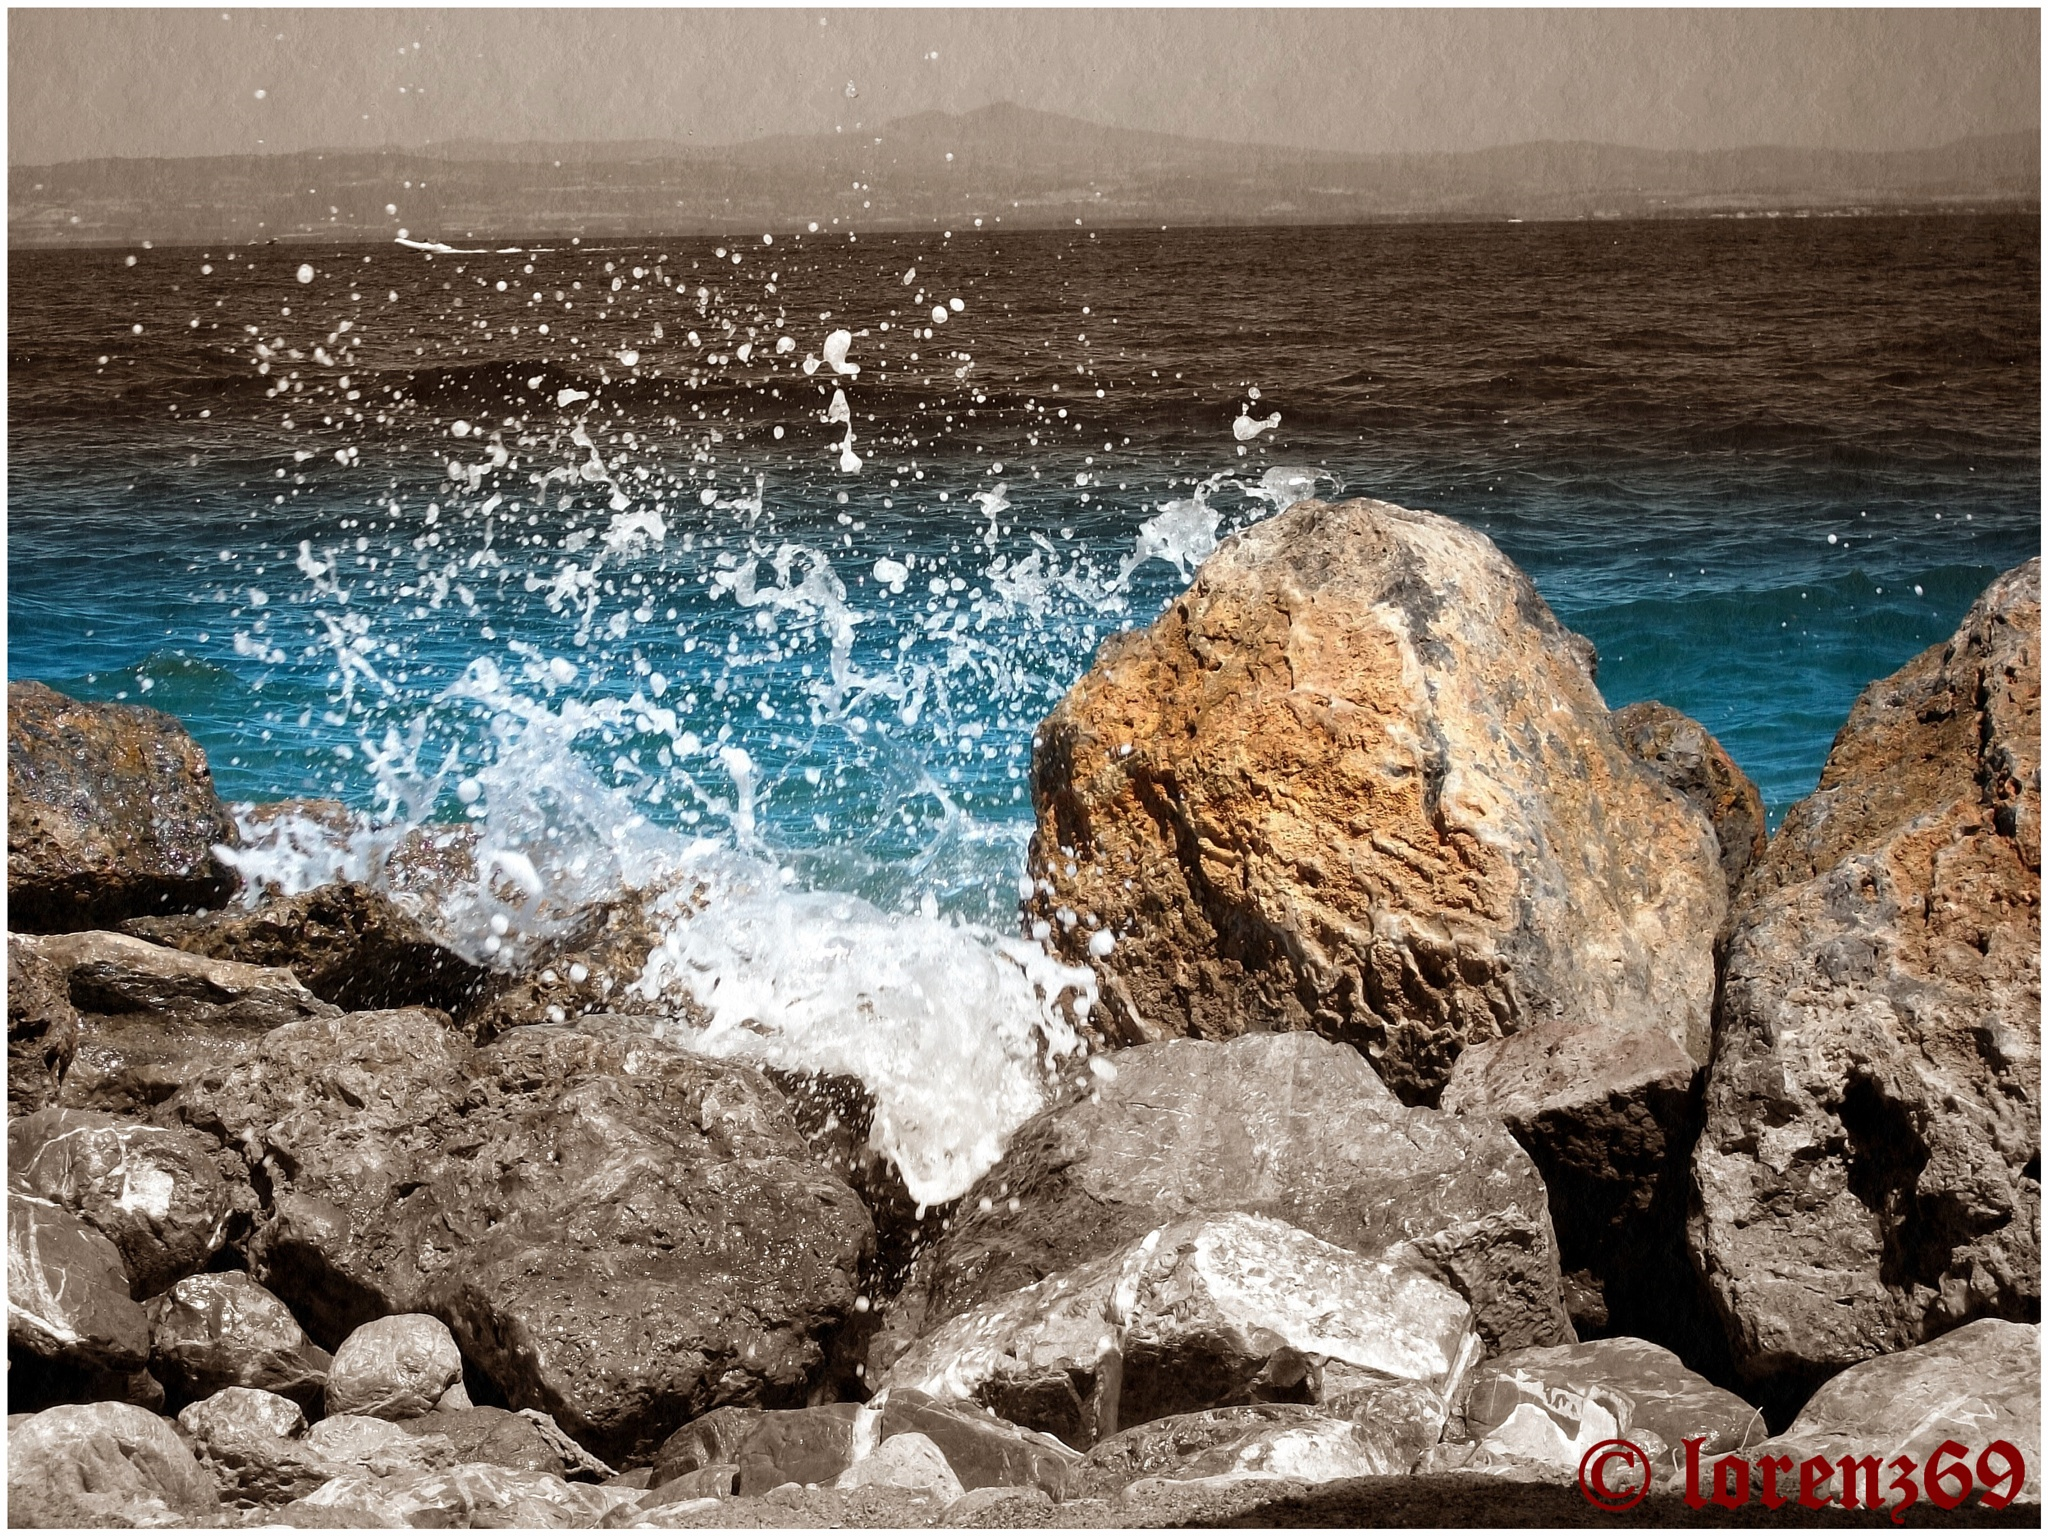 COMING ON THE ISLAND OF ELBA by lorenz@69